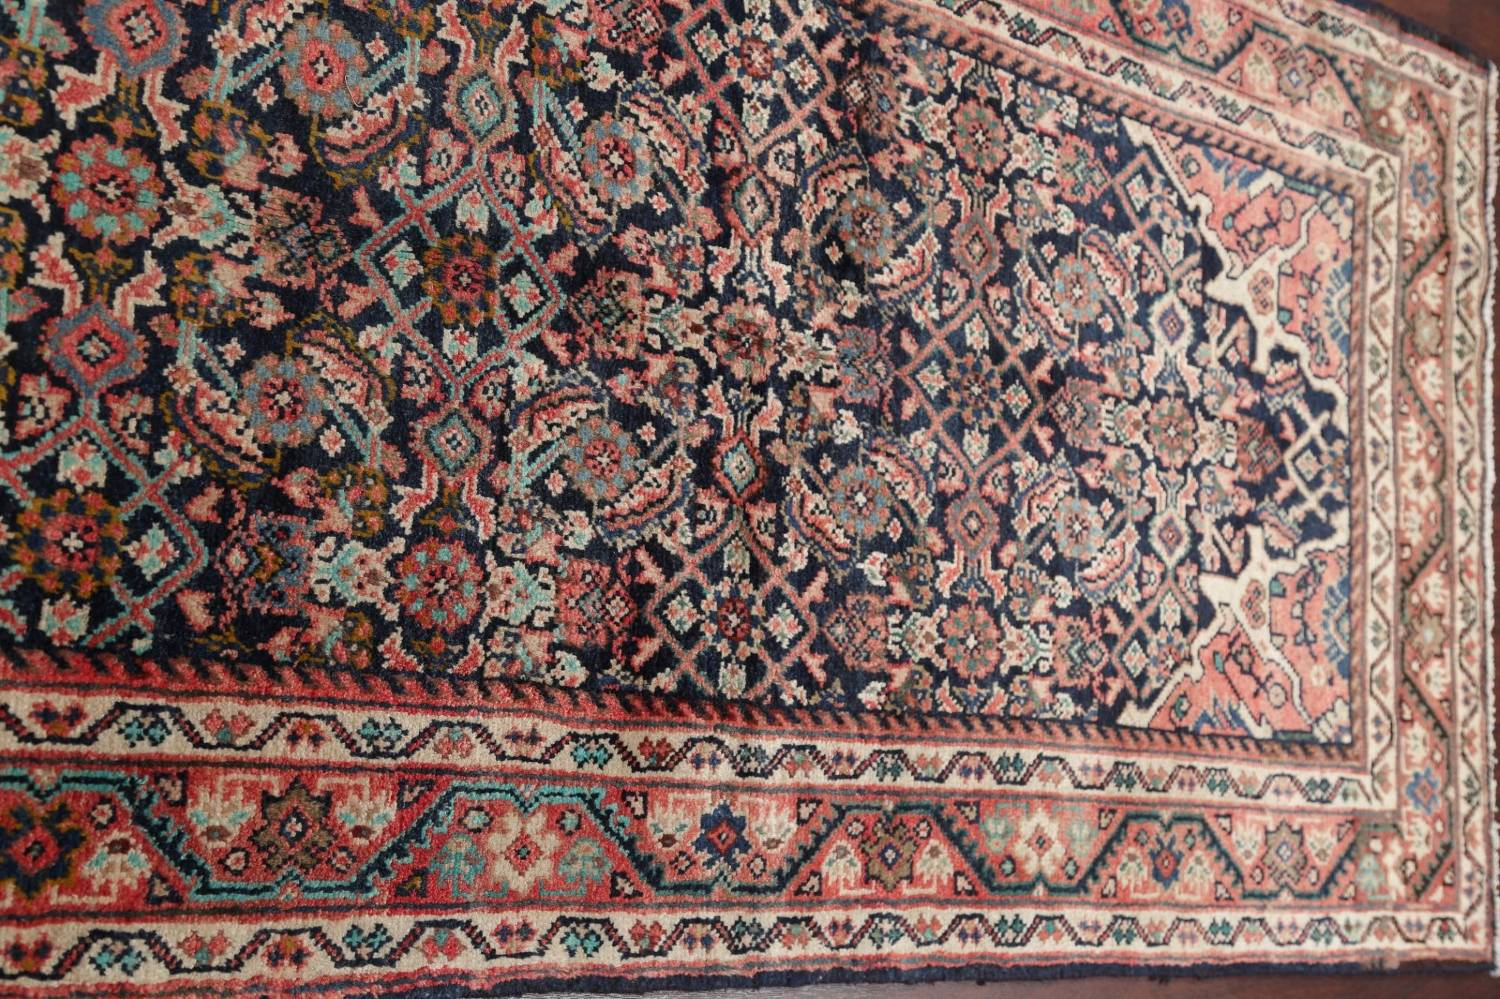 Antique Geometric Mahal Hamedan Persian Hand-Knotted 4x13 Runner Rug image 11